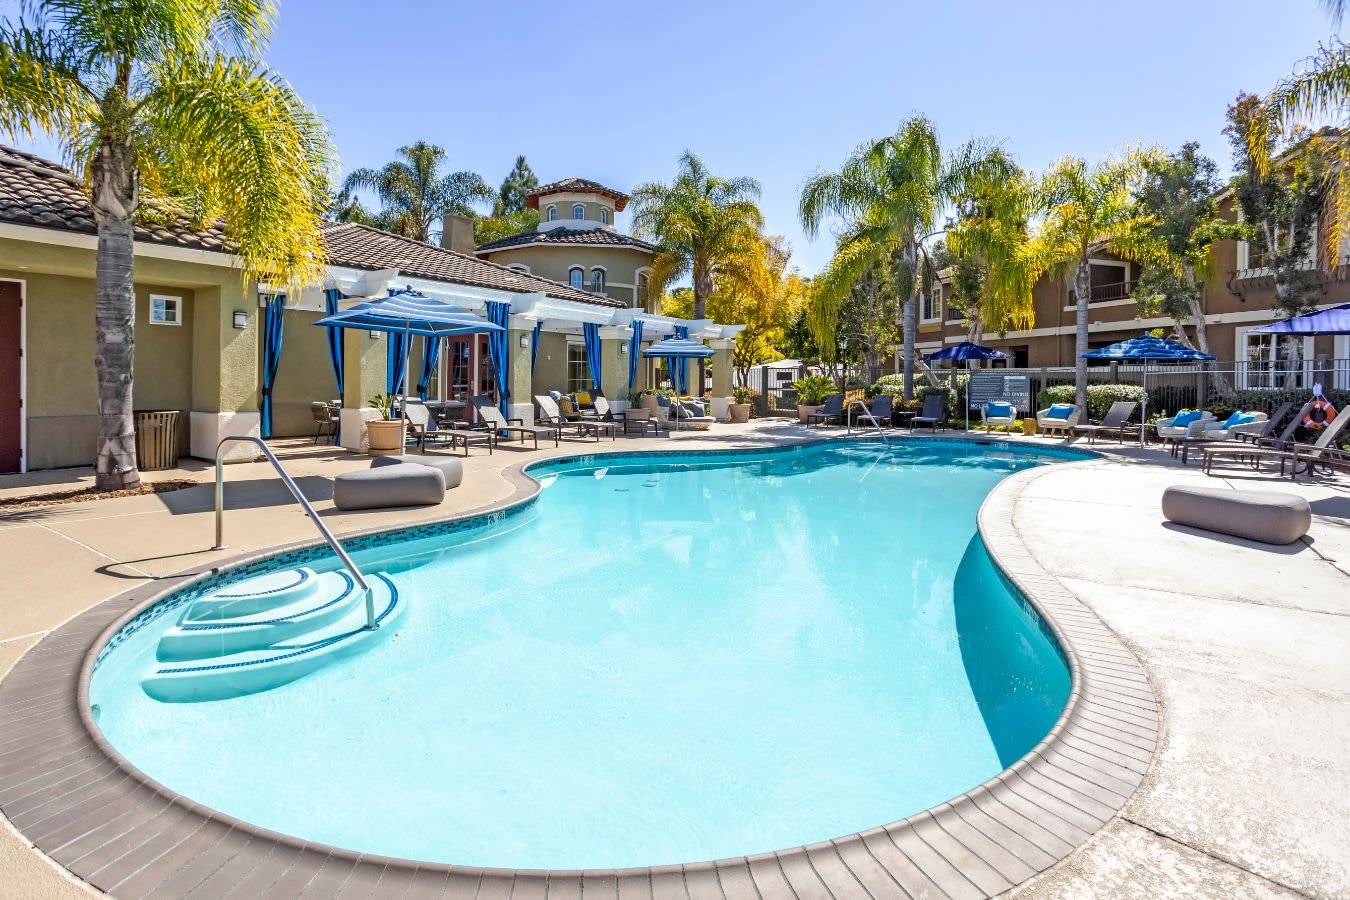 Beautiful resort-style swimming pool at Sofi Highlands in San Diego, California